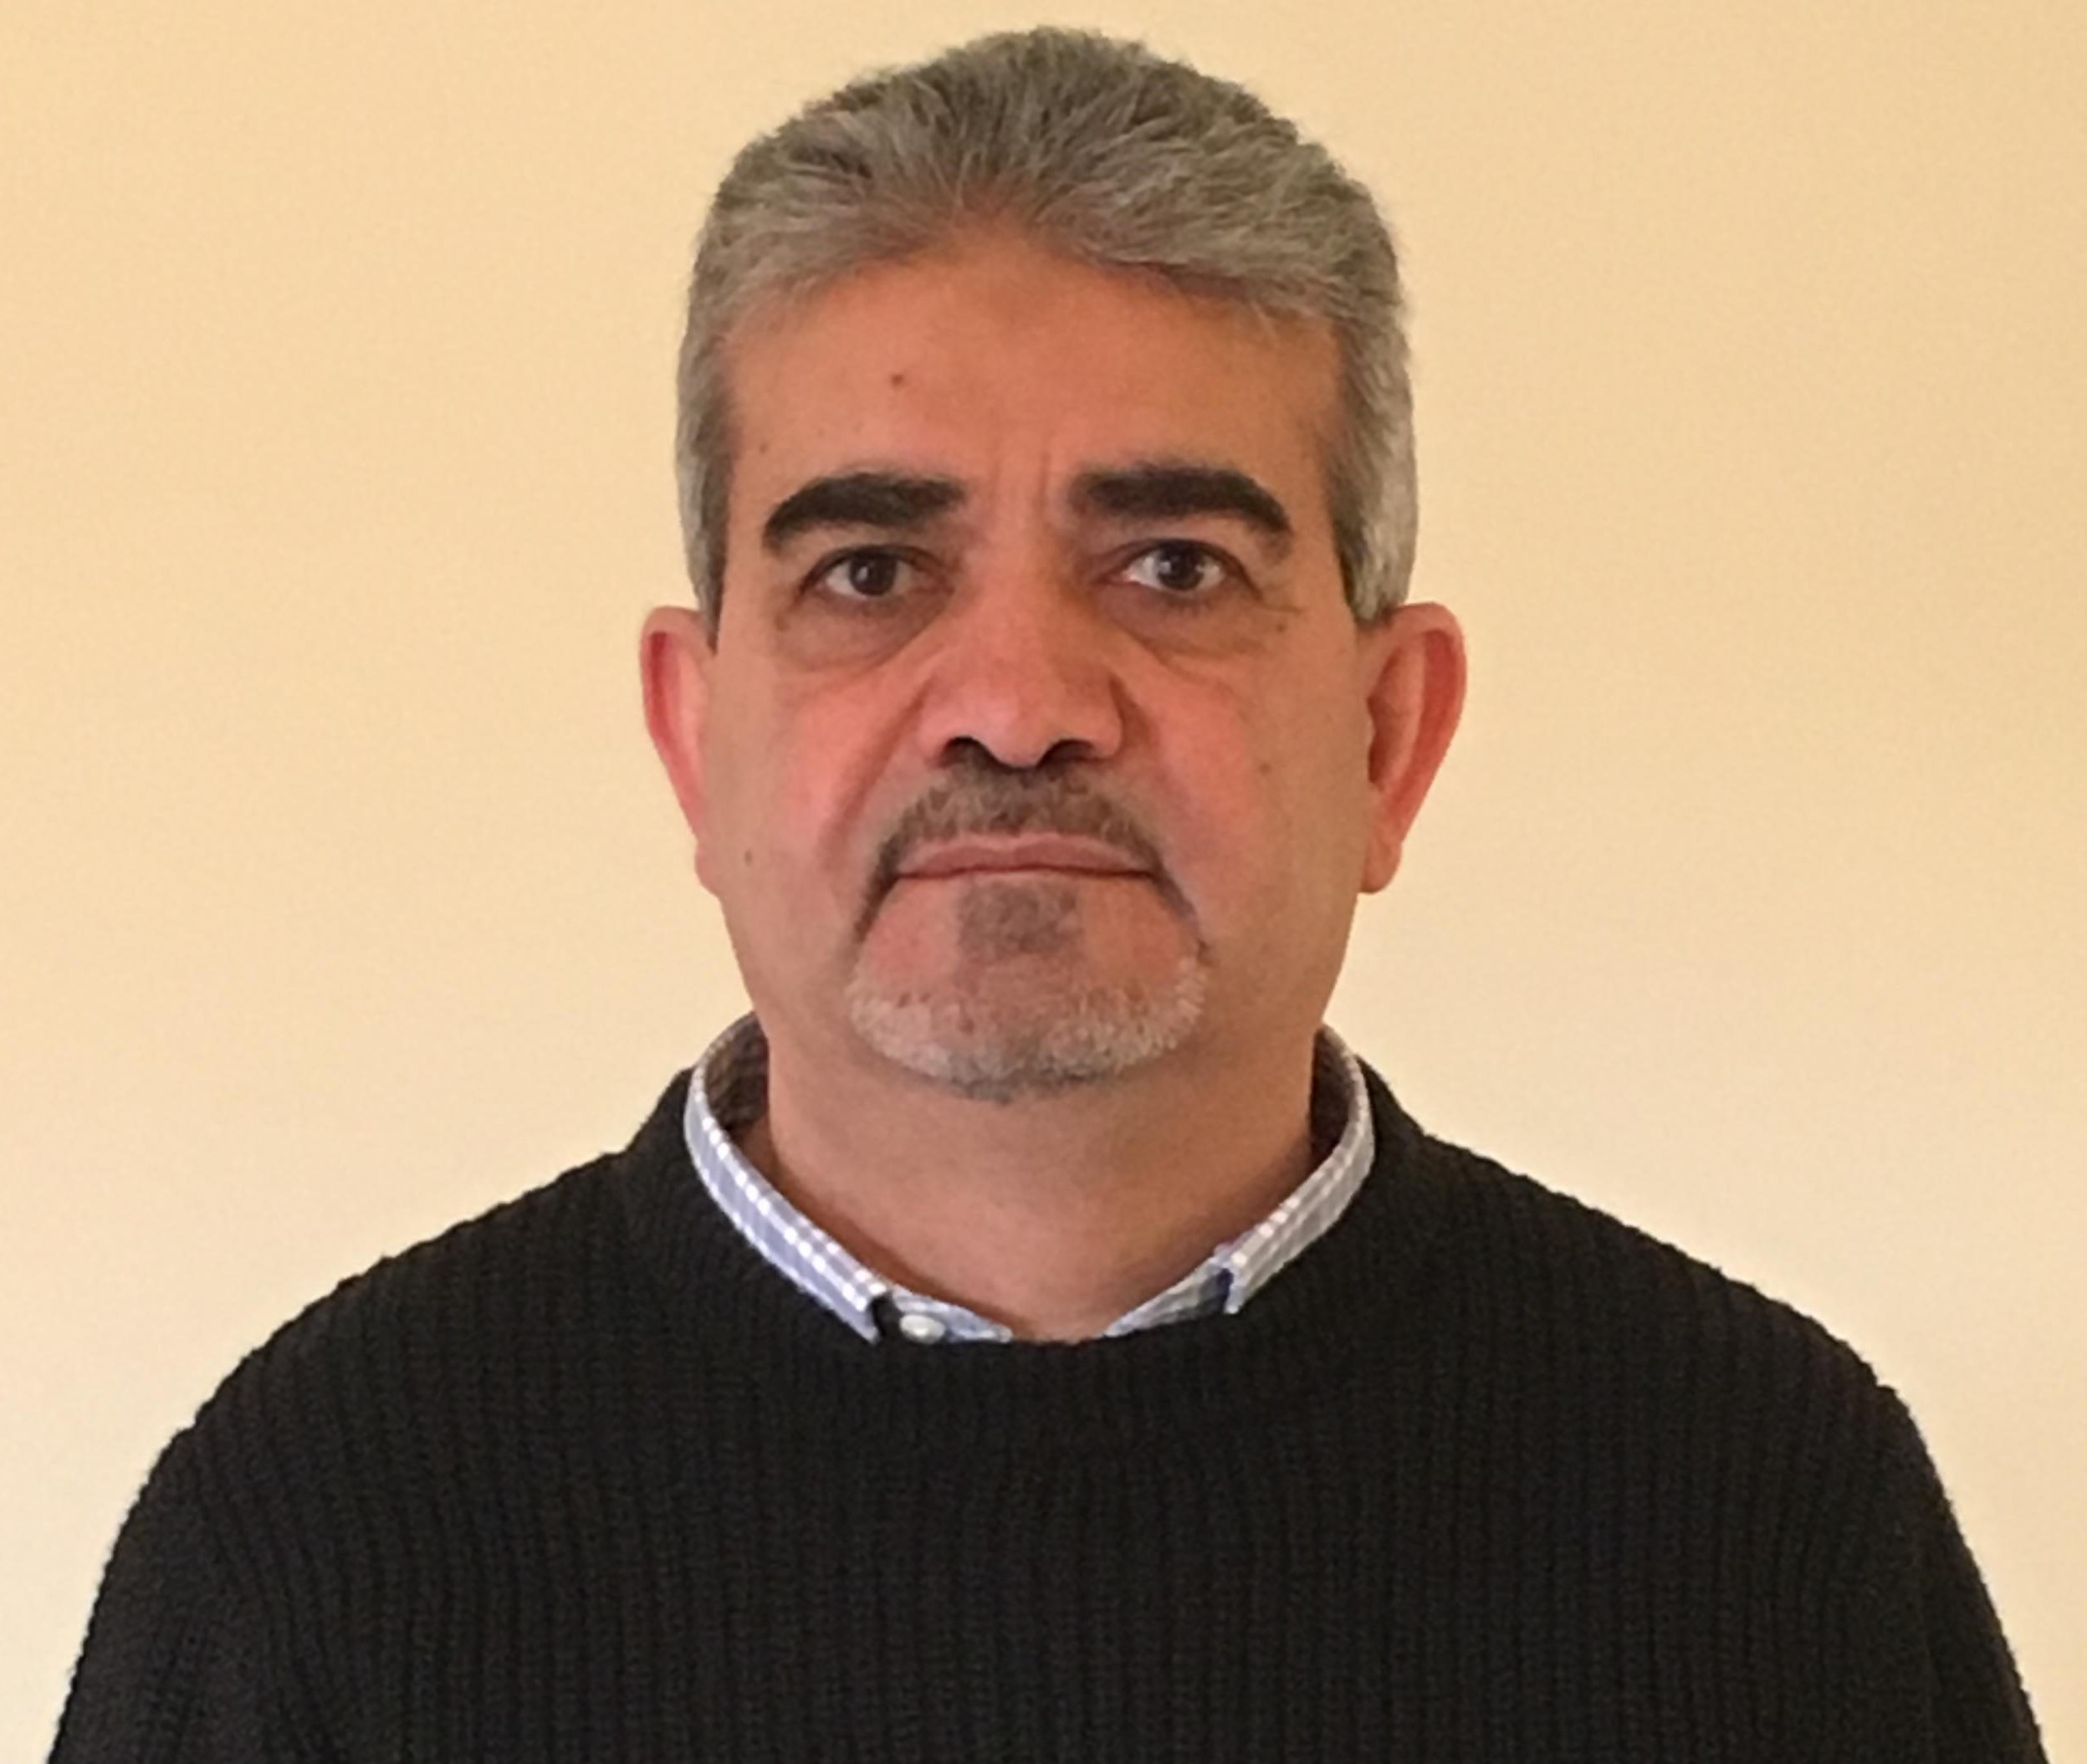 Dr Mohammed Mabrook